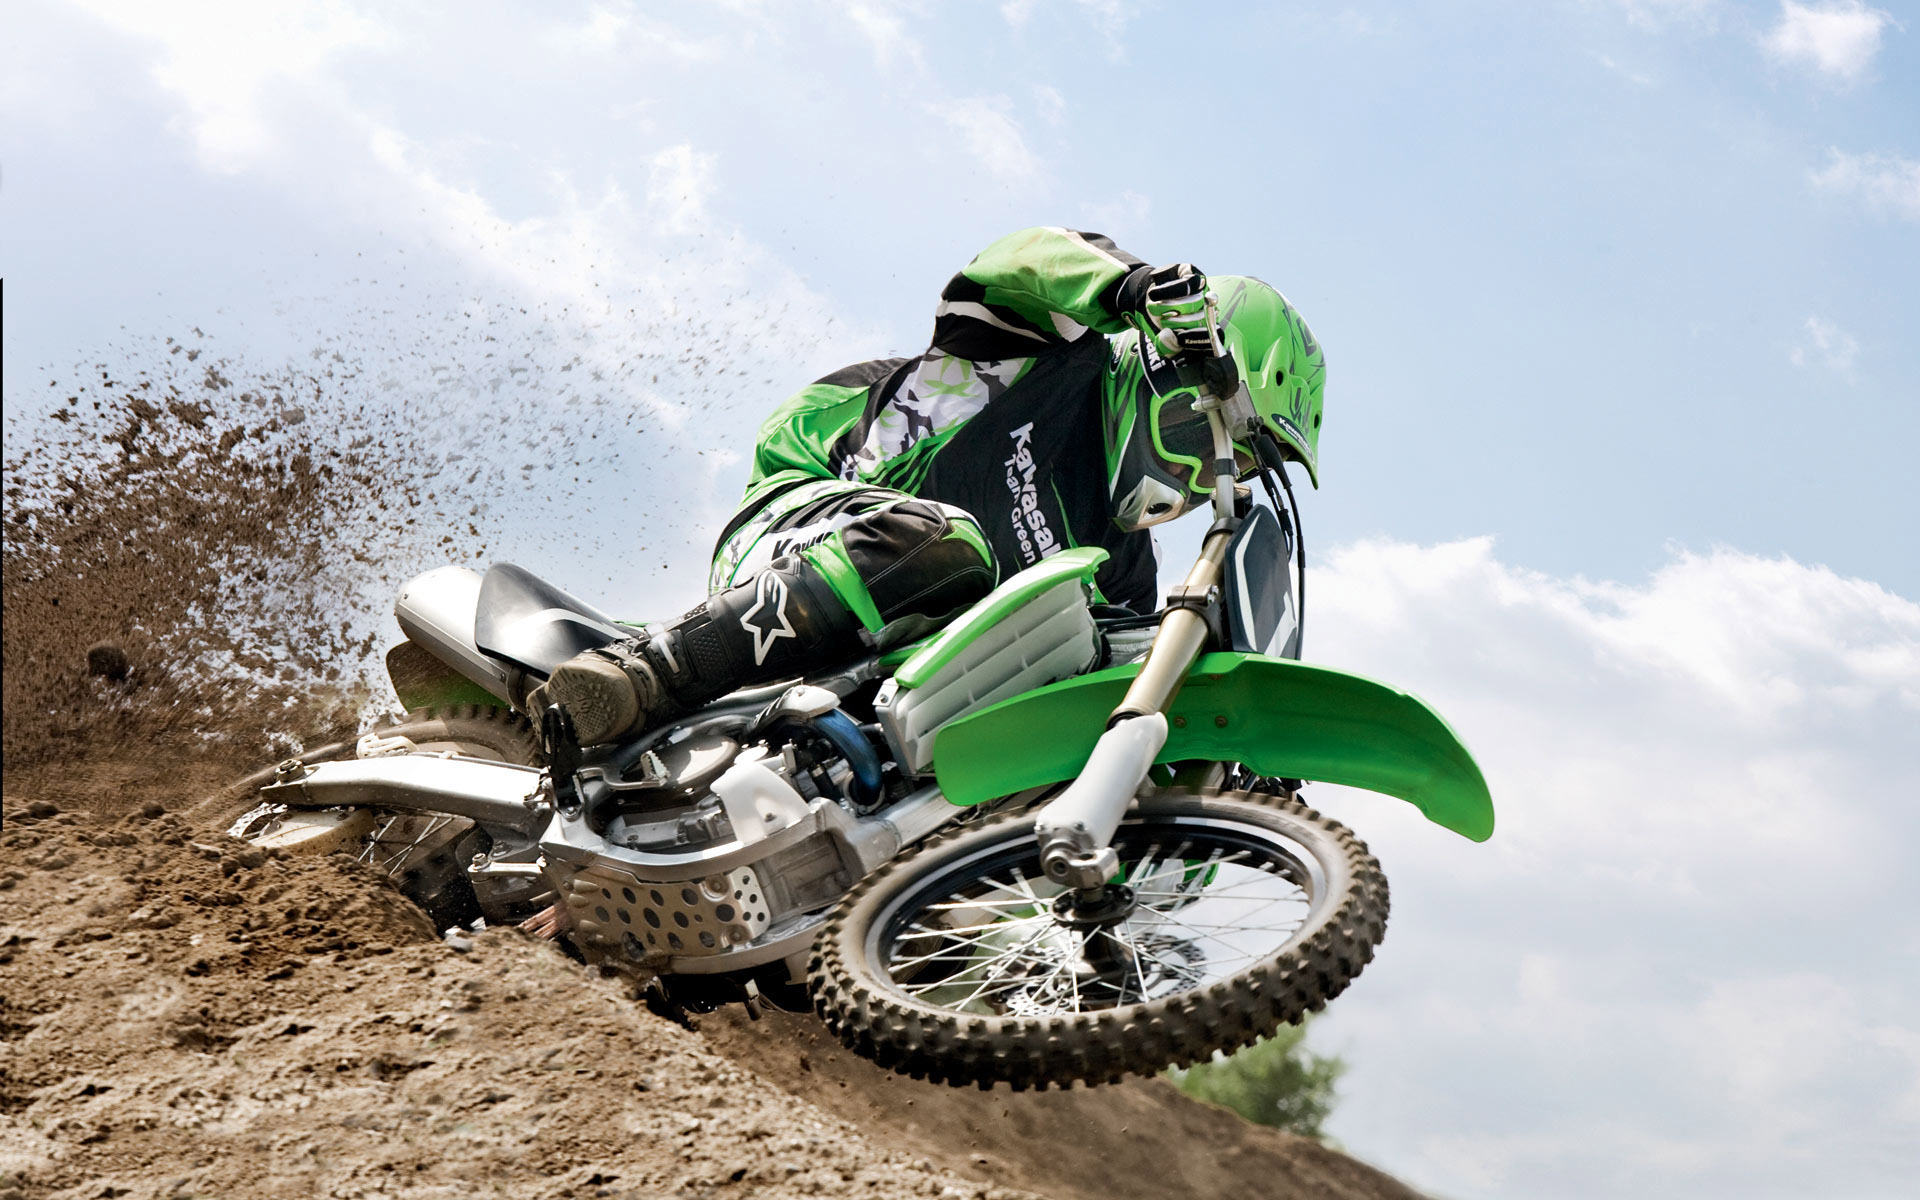 HD Motocross Wallpapers and Photos  HD Bikes Wallpapers 1920x1200